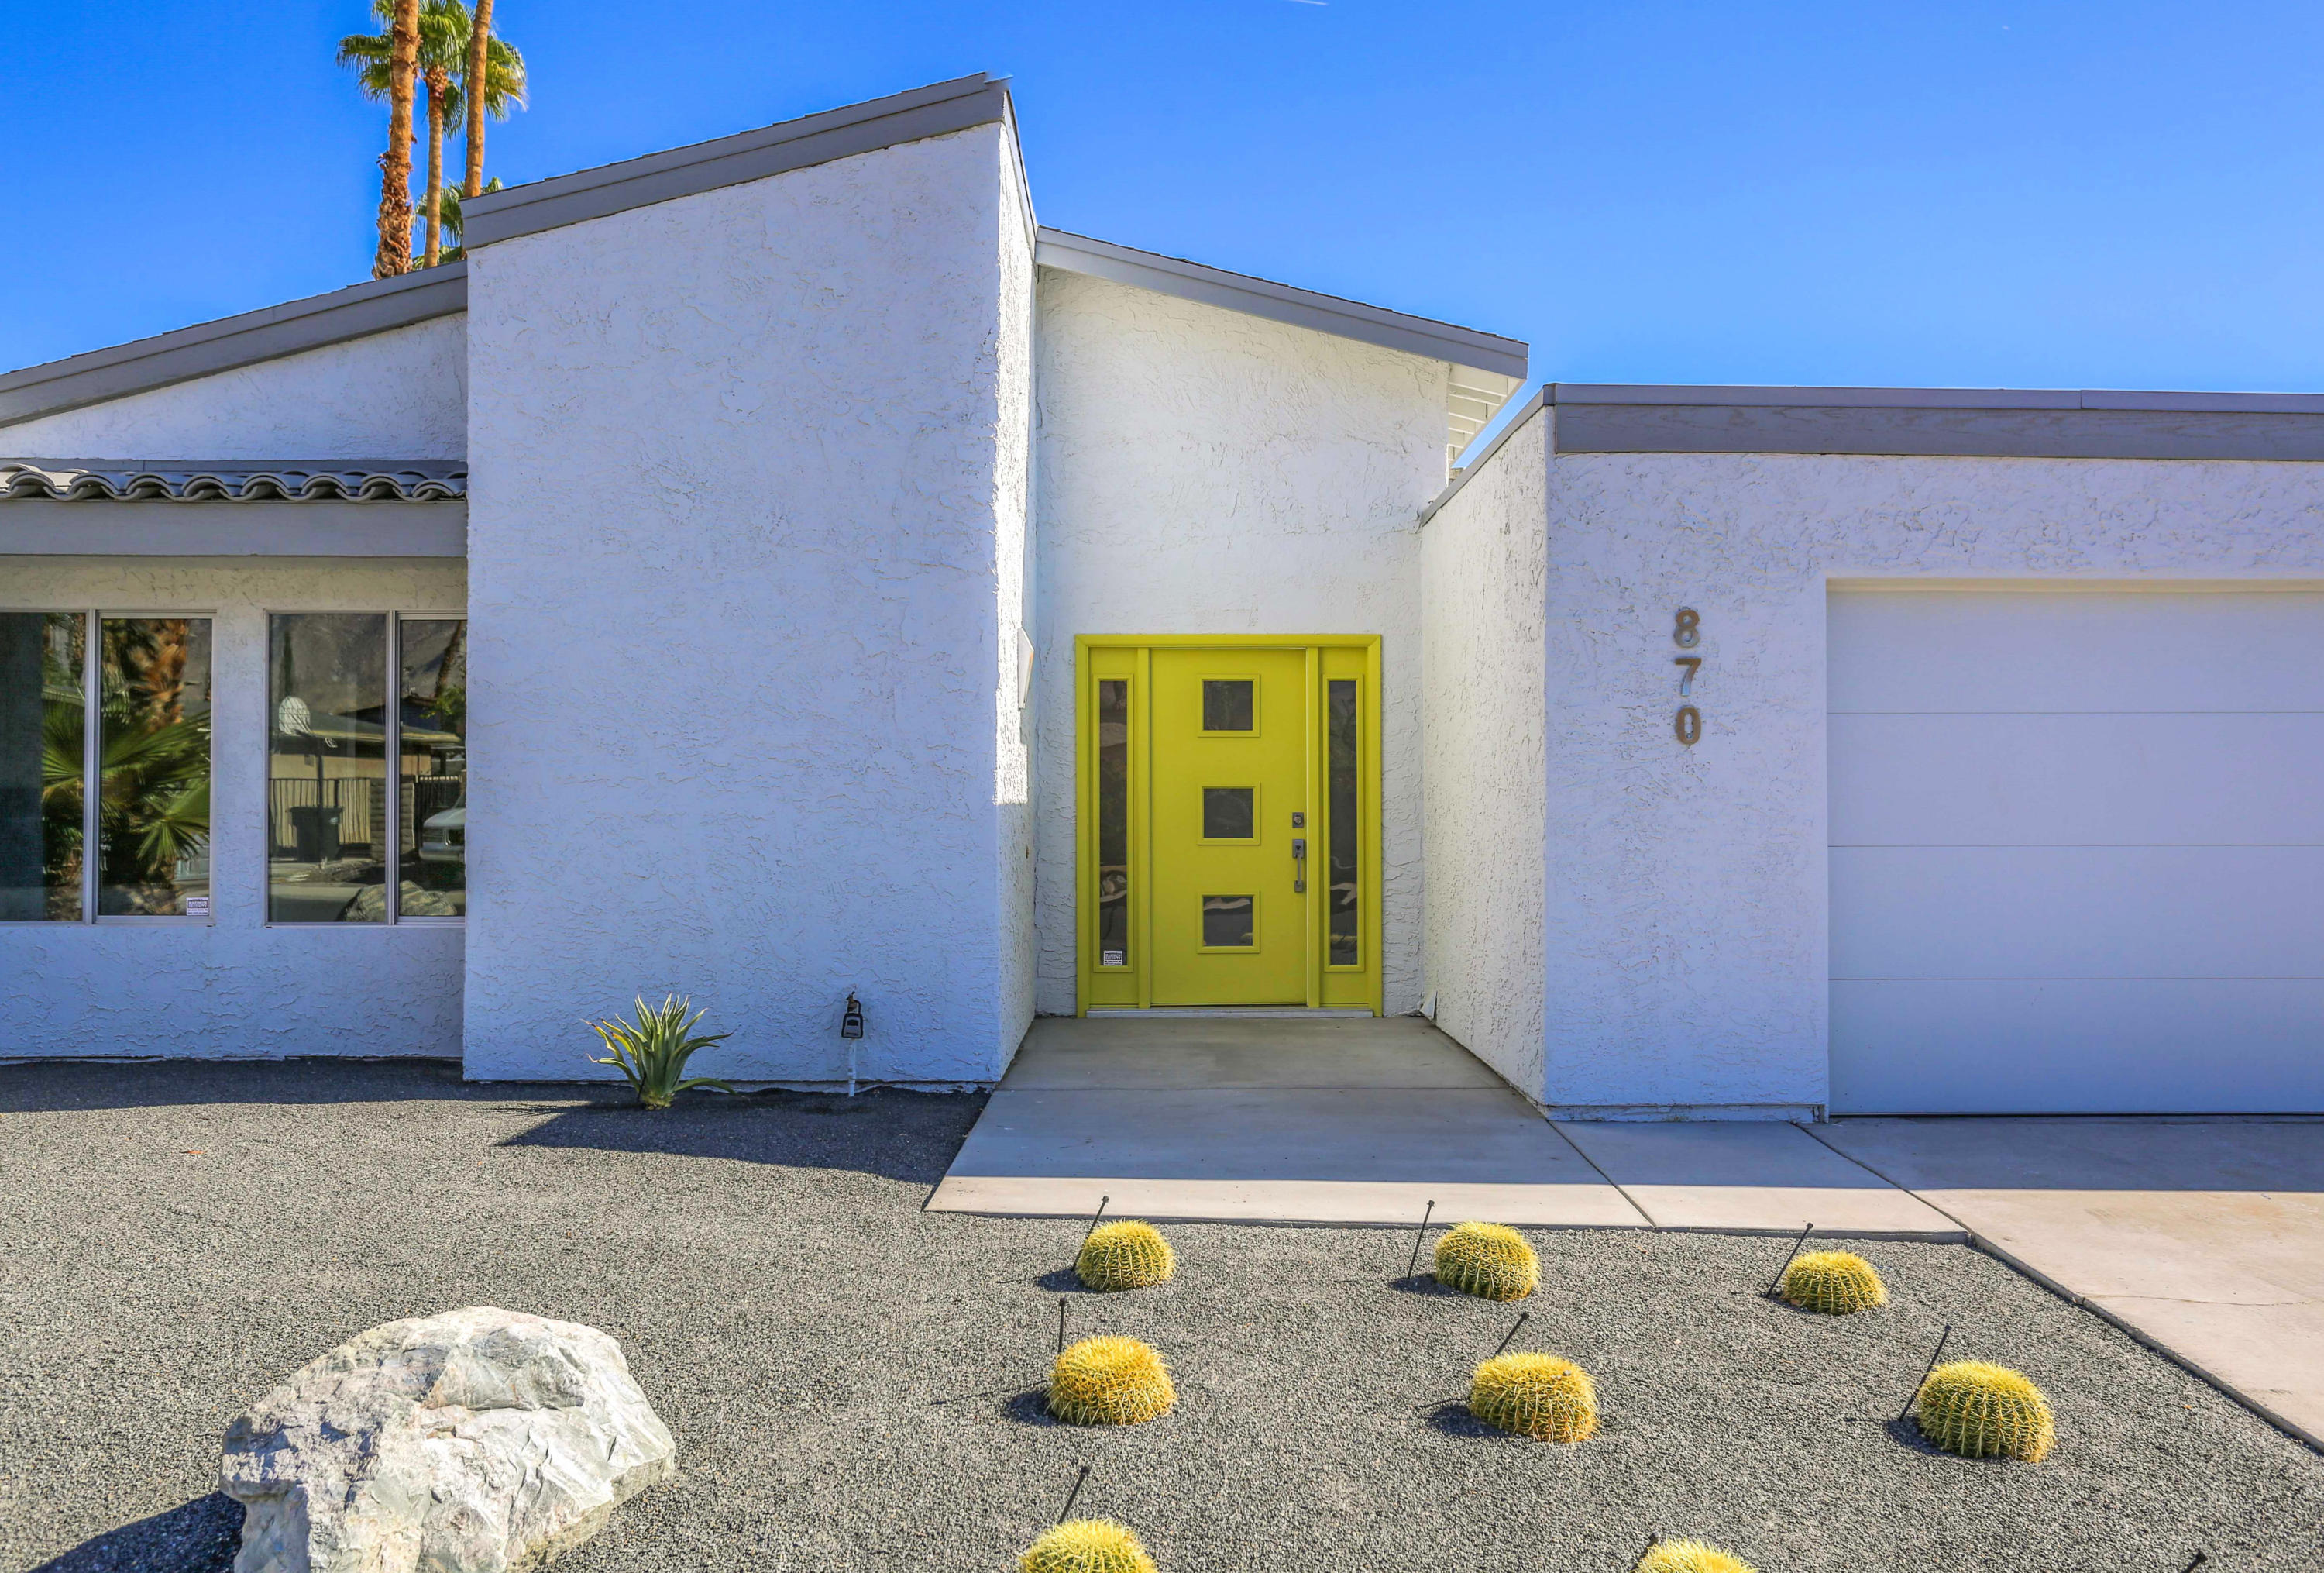 870 Arroyo Vista Drive, Palm Springs, California 92264, 3 Bedrooms Bedrooms, ,2 BathroomsBathrooms,Residential,Sold,870 Arroyo Vista Drive,19508790